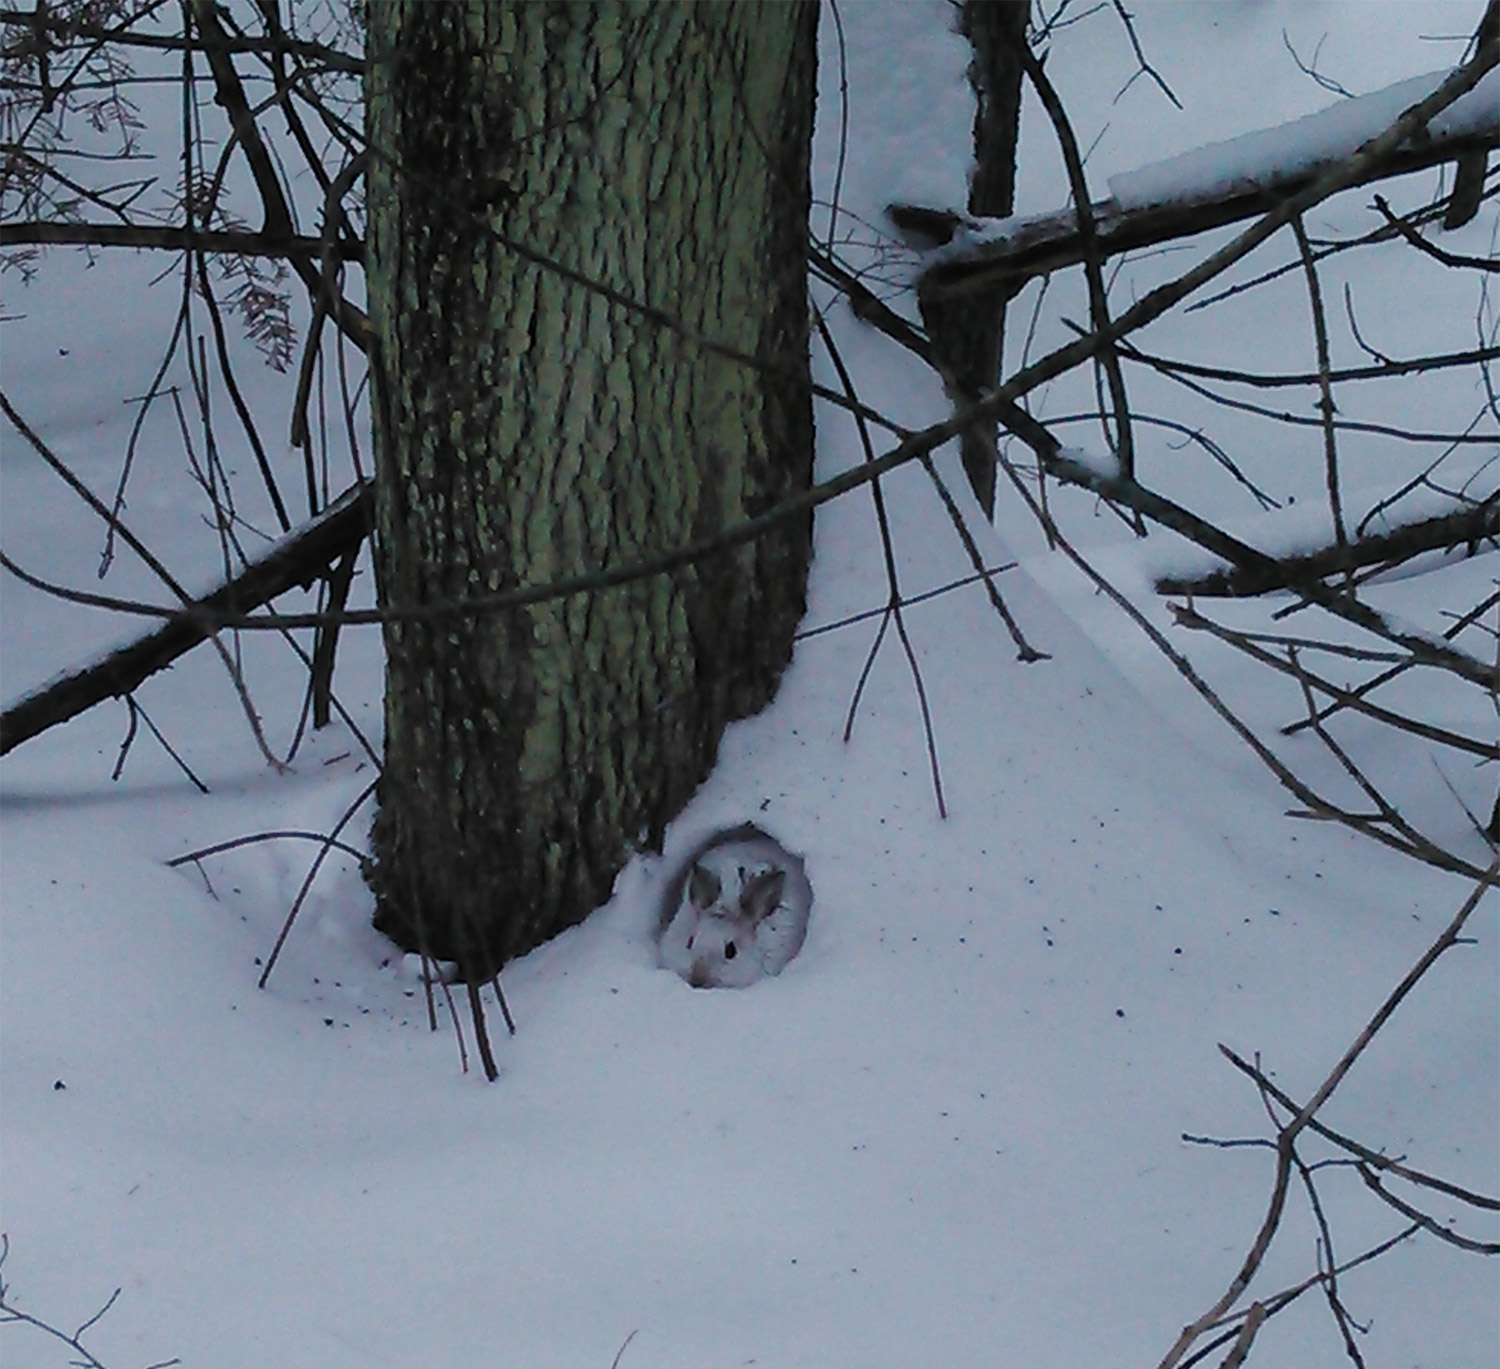 At least there's no Cooper's hawk in the branches above this hare that's not so well hidden that Greenwood's Michael Lariviere couldn't see it.